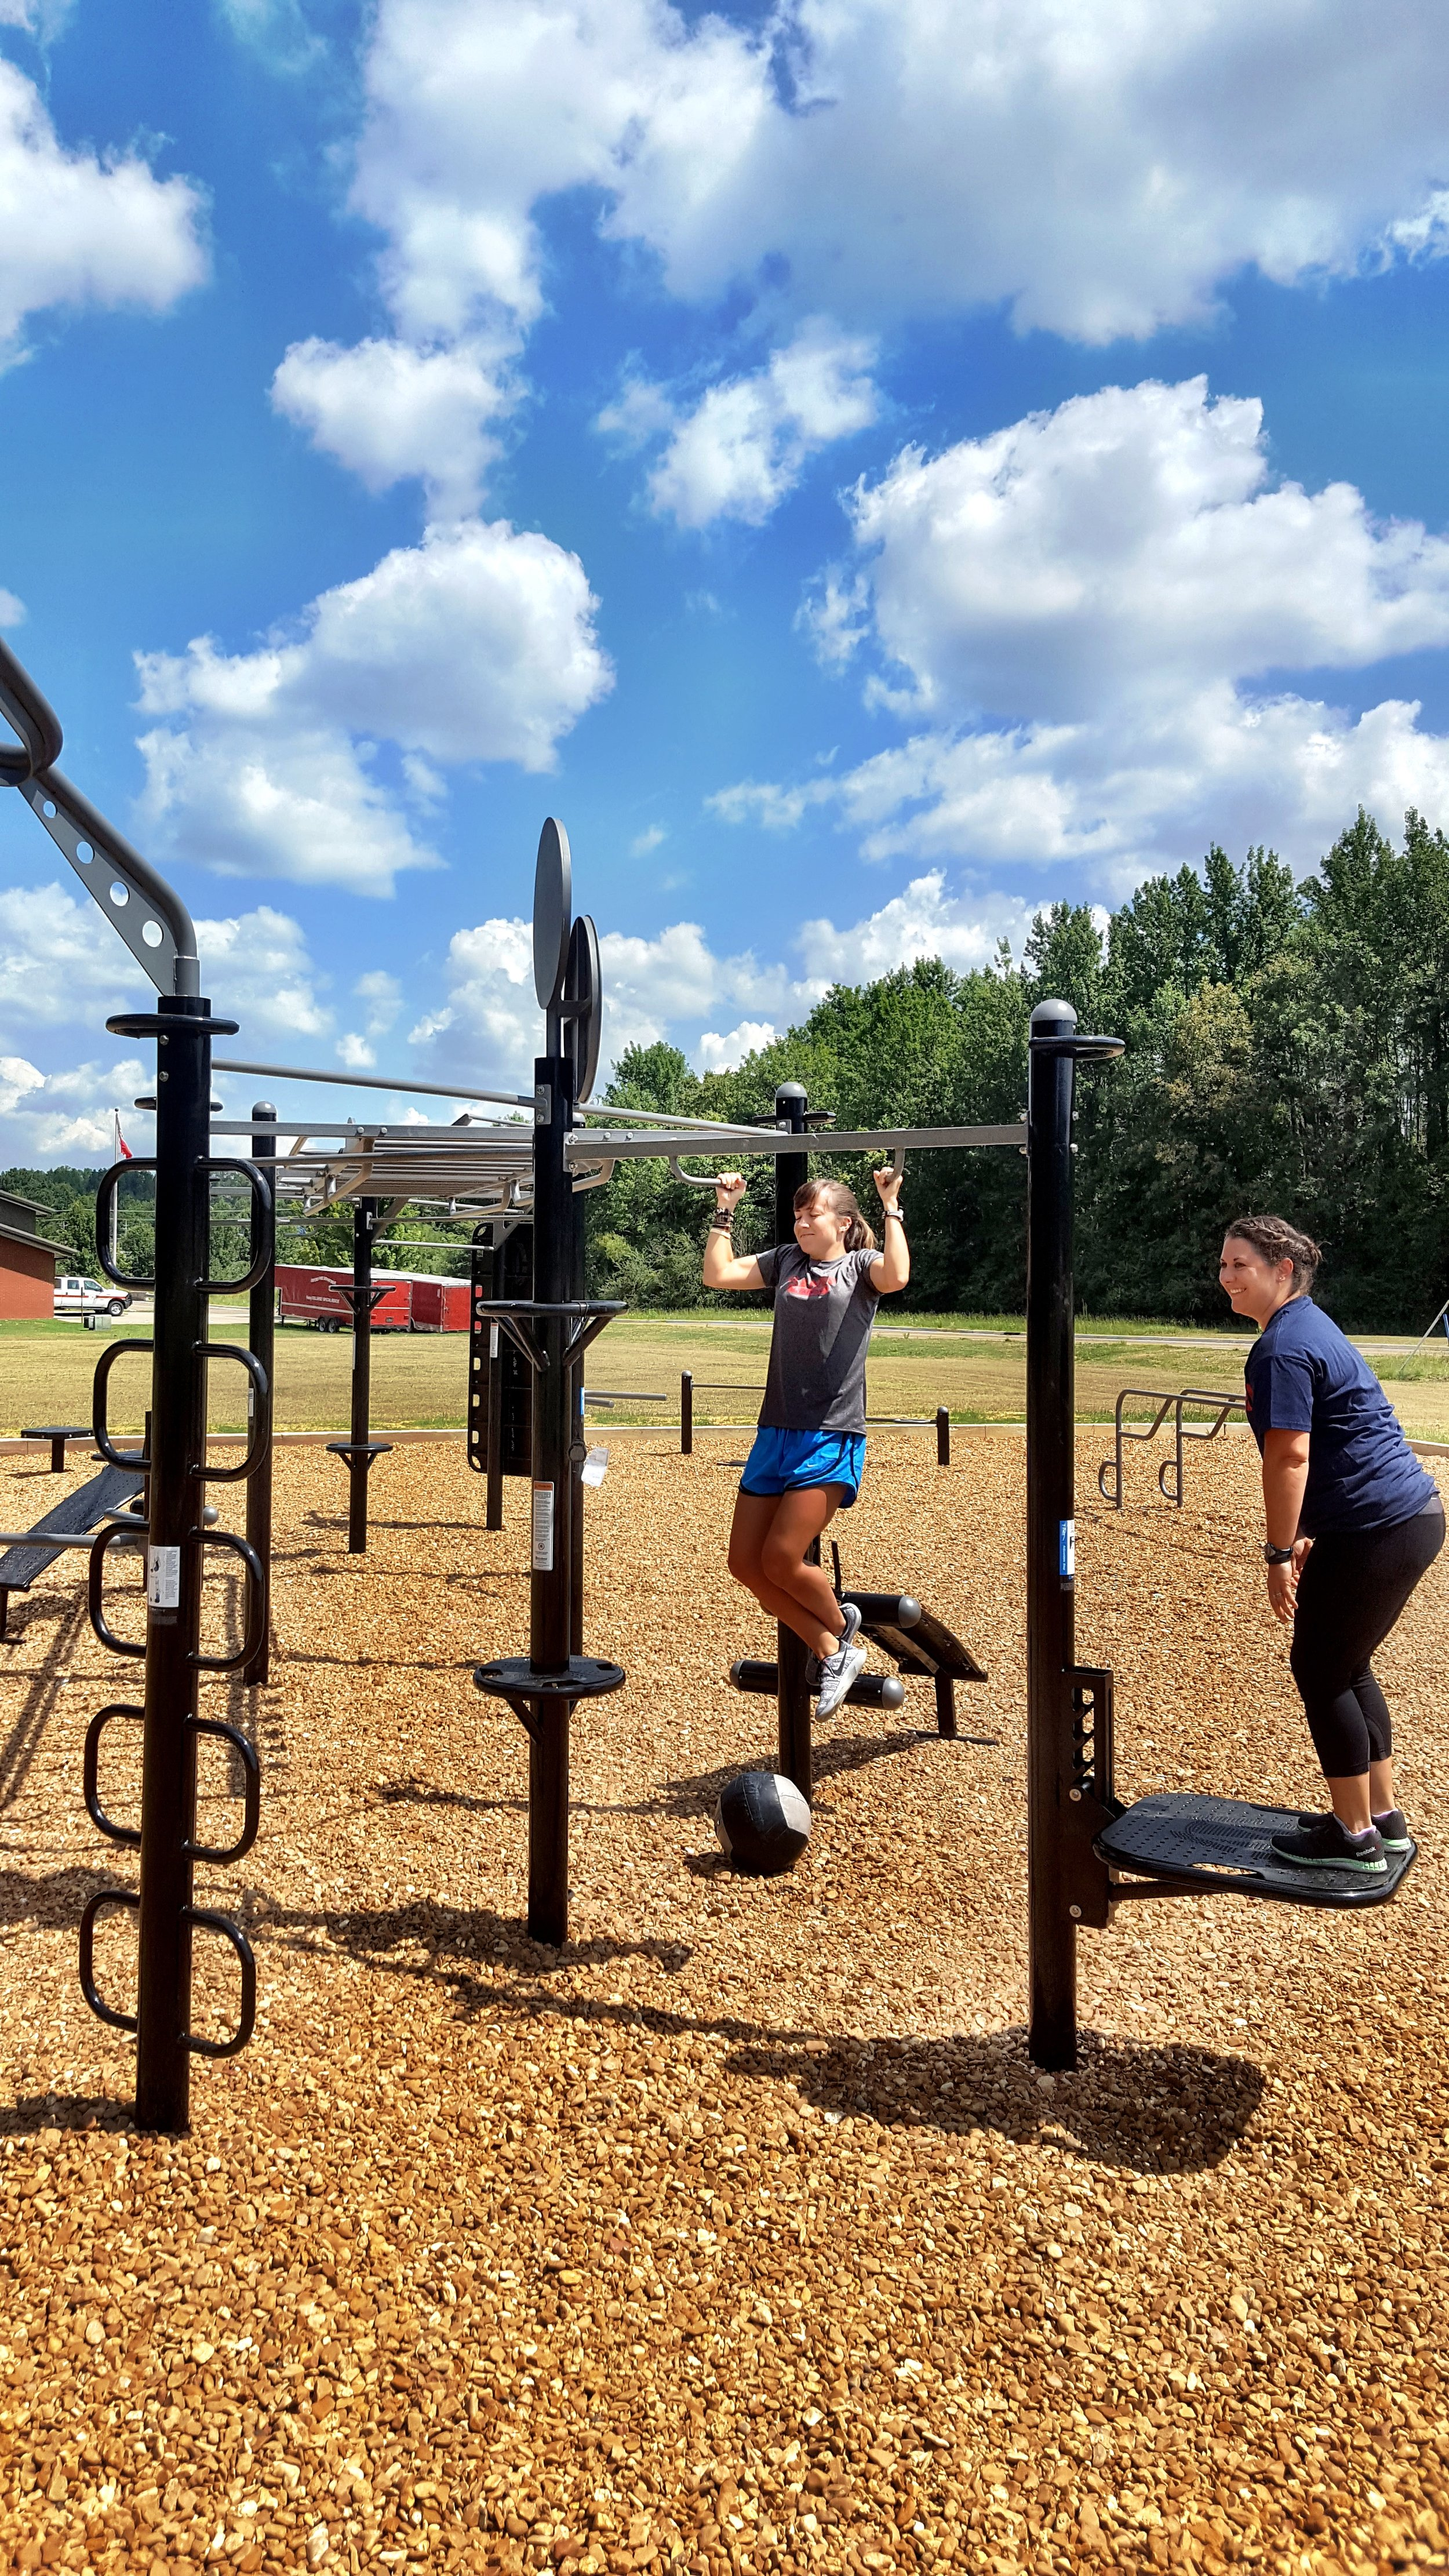 Group outdoor fitness workouts